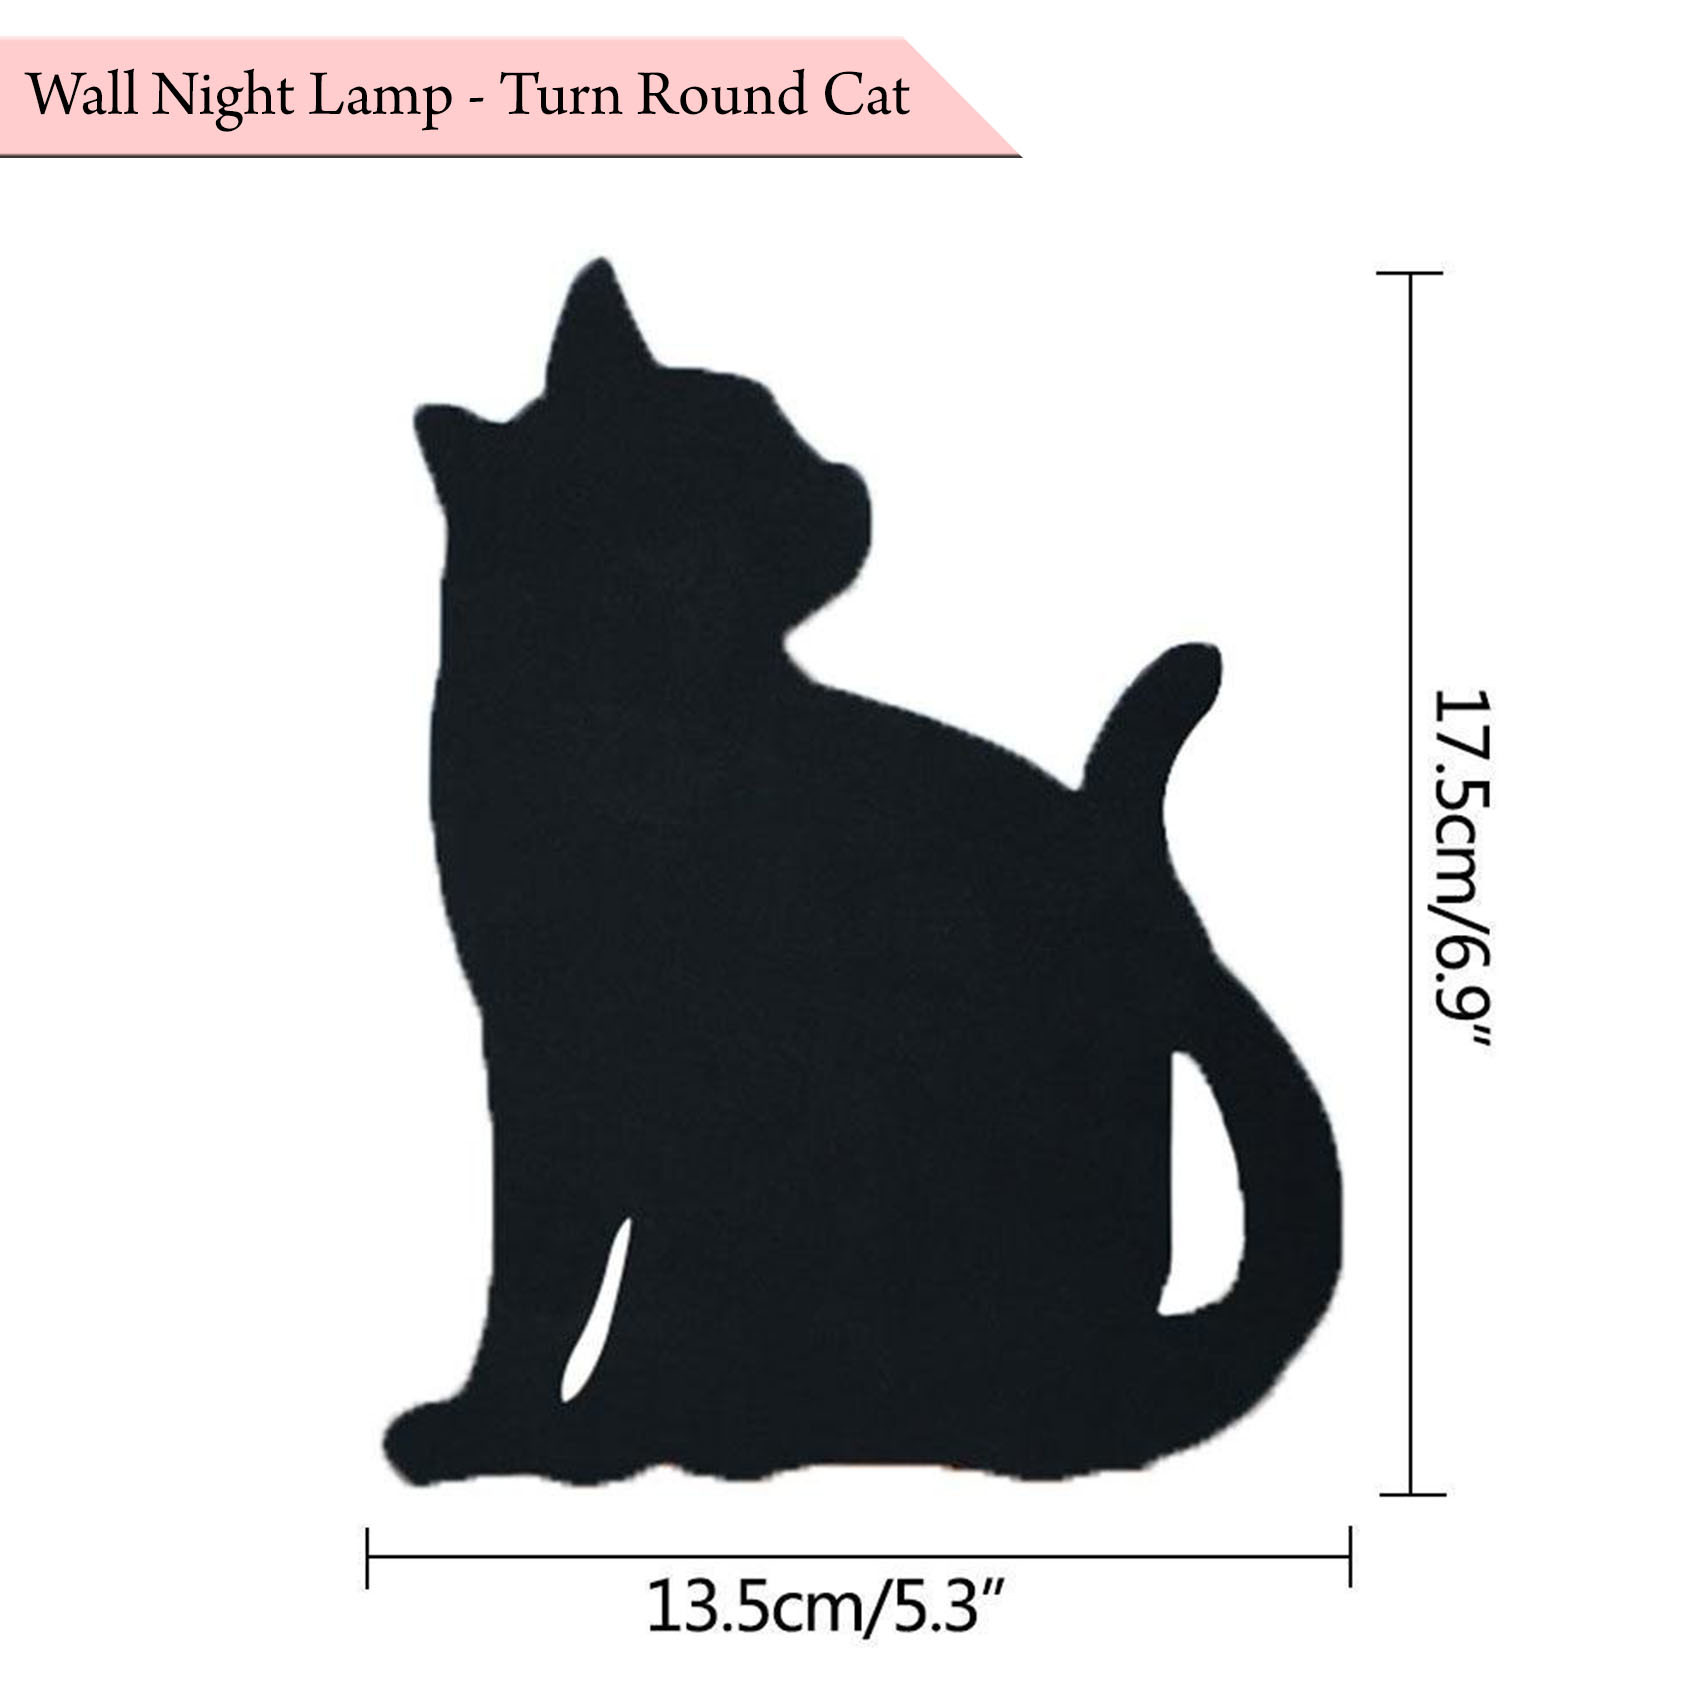 Wall Night Lamp Turn Around Cat - Black